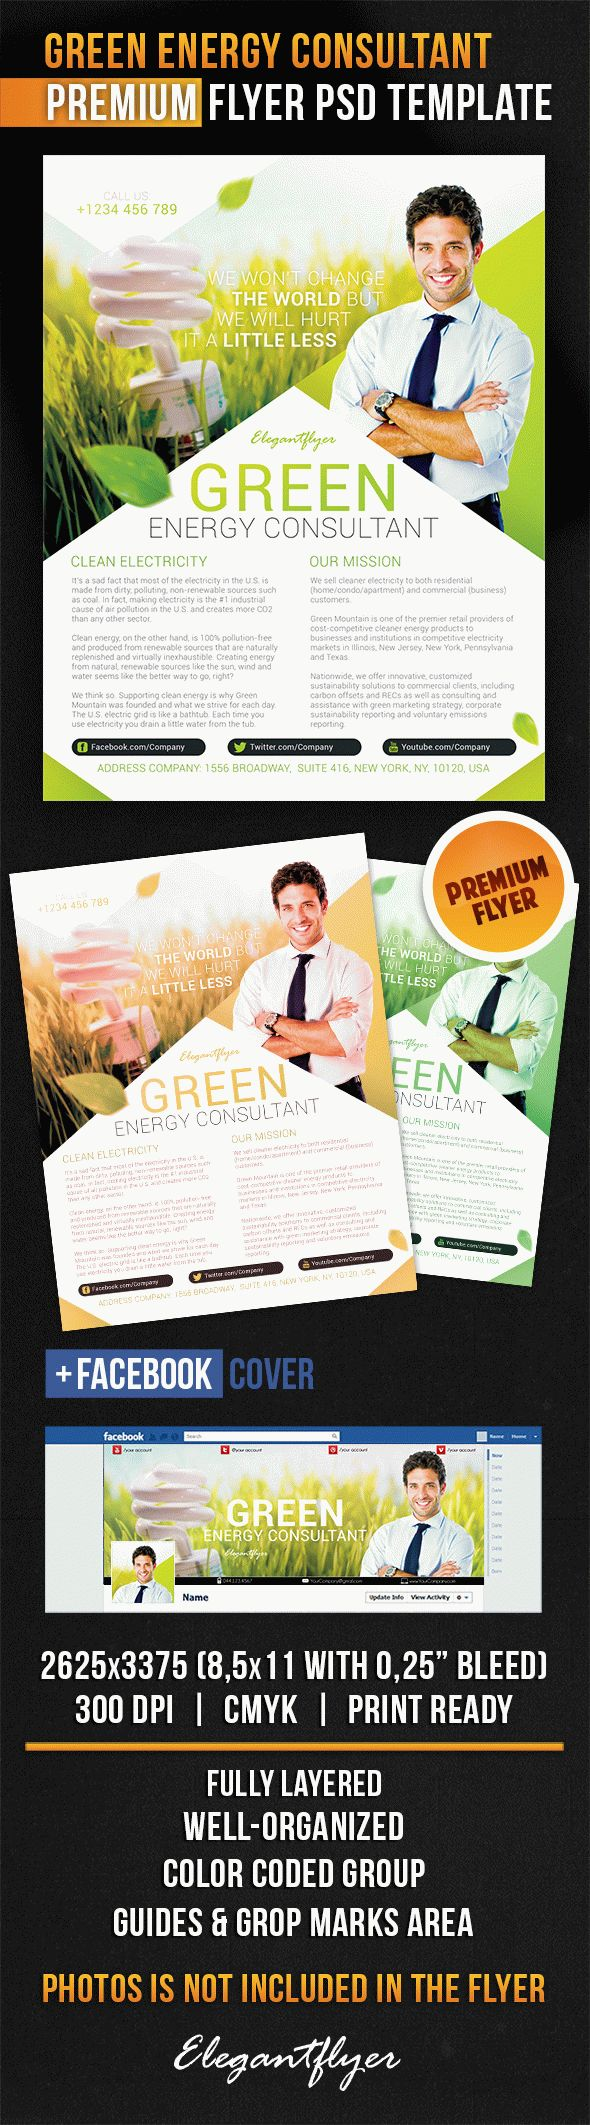 Green Energy Consultant – Flyer PSD Template + Facebook Cover